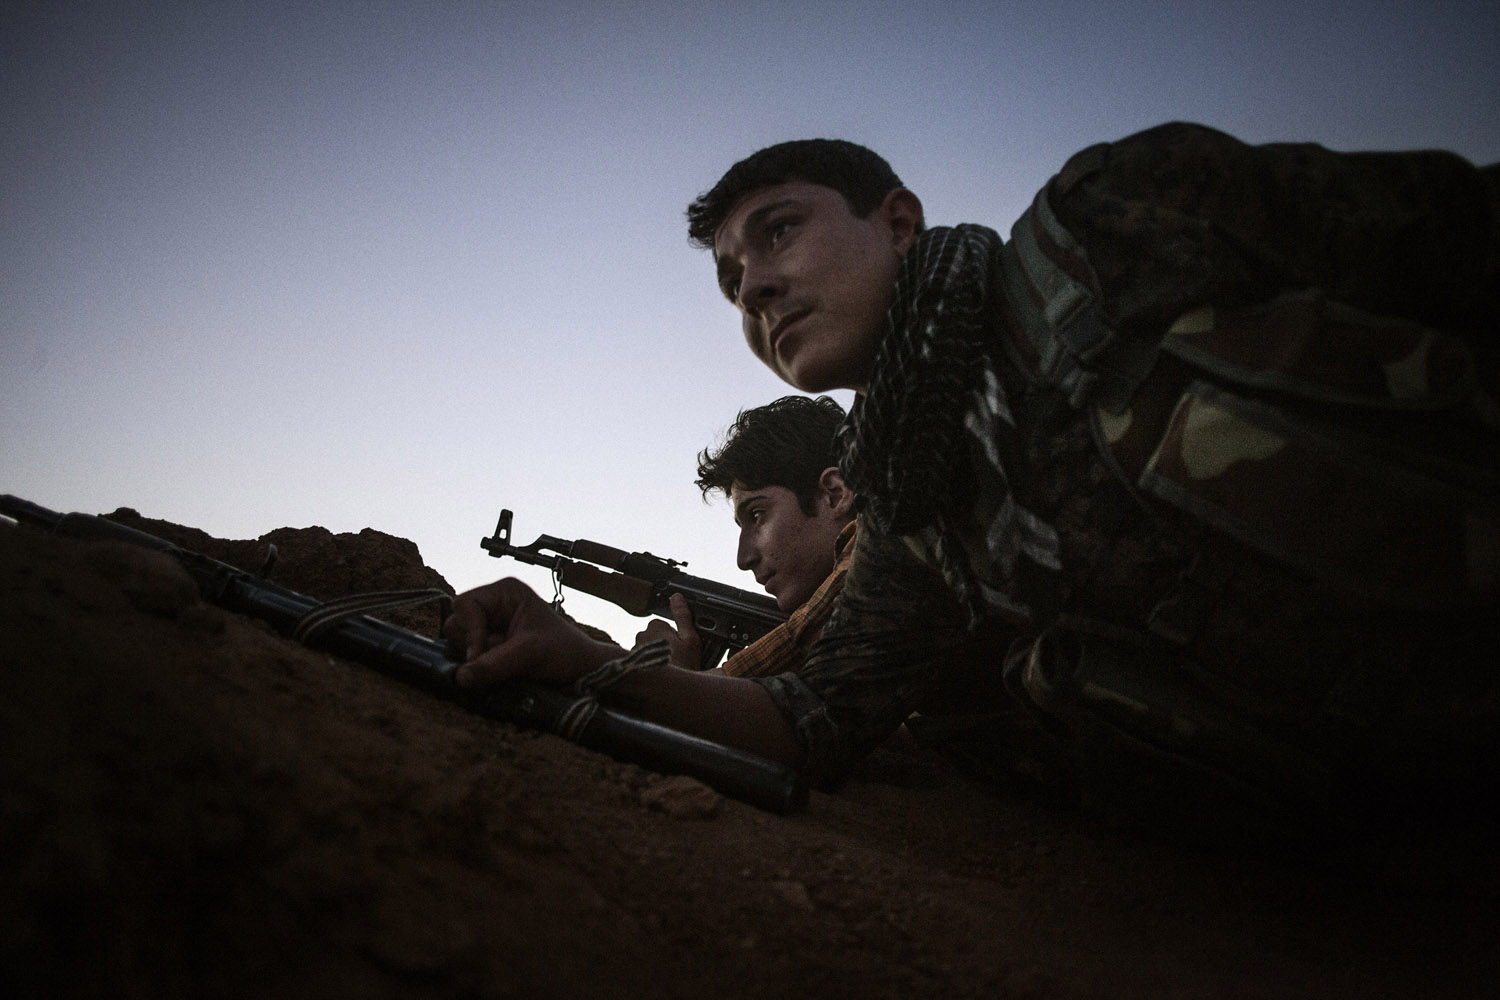 Armed YPG fighters take position inside a trench  in the Syrian town of Ras al-Ain, close to the Turkish border.